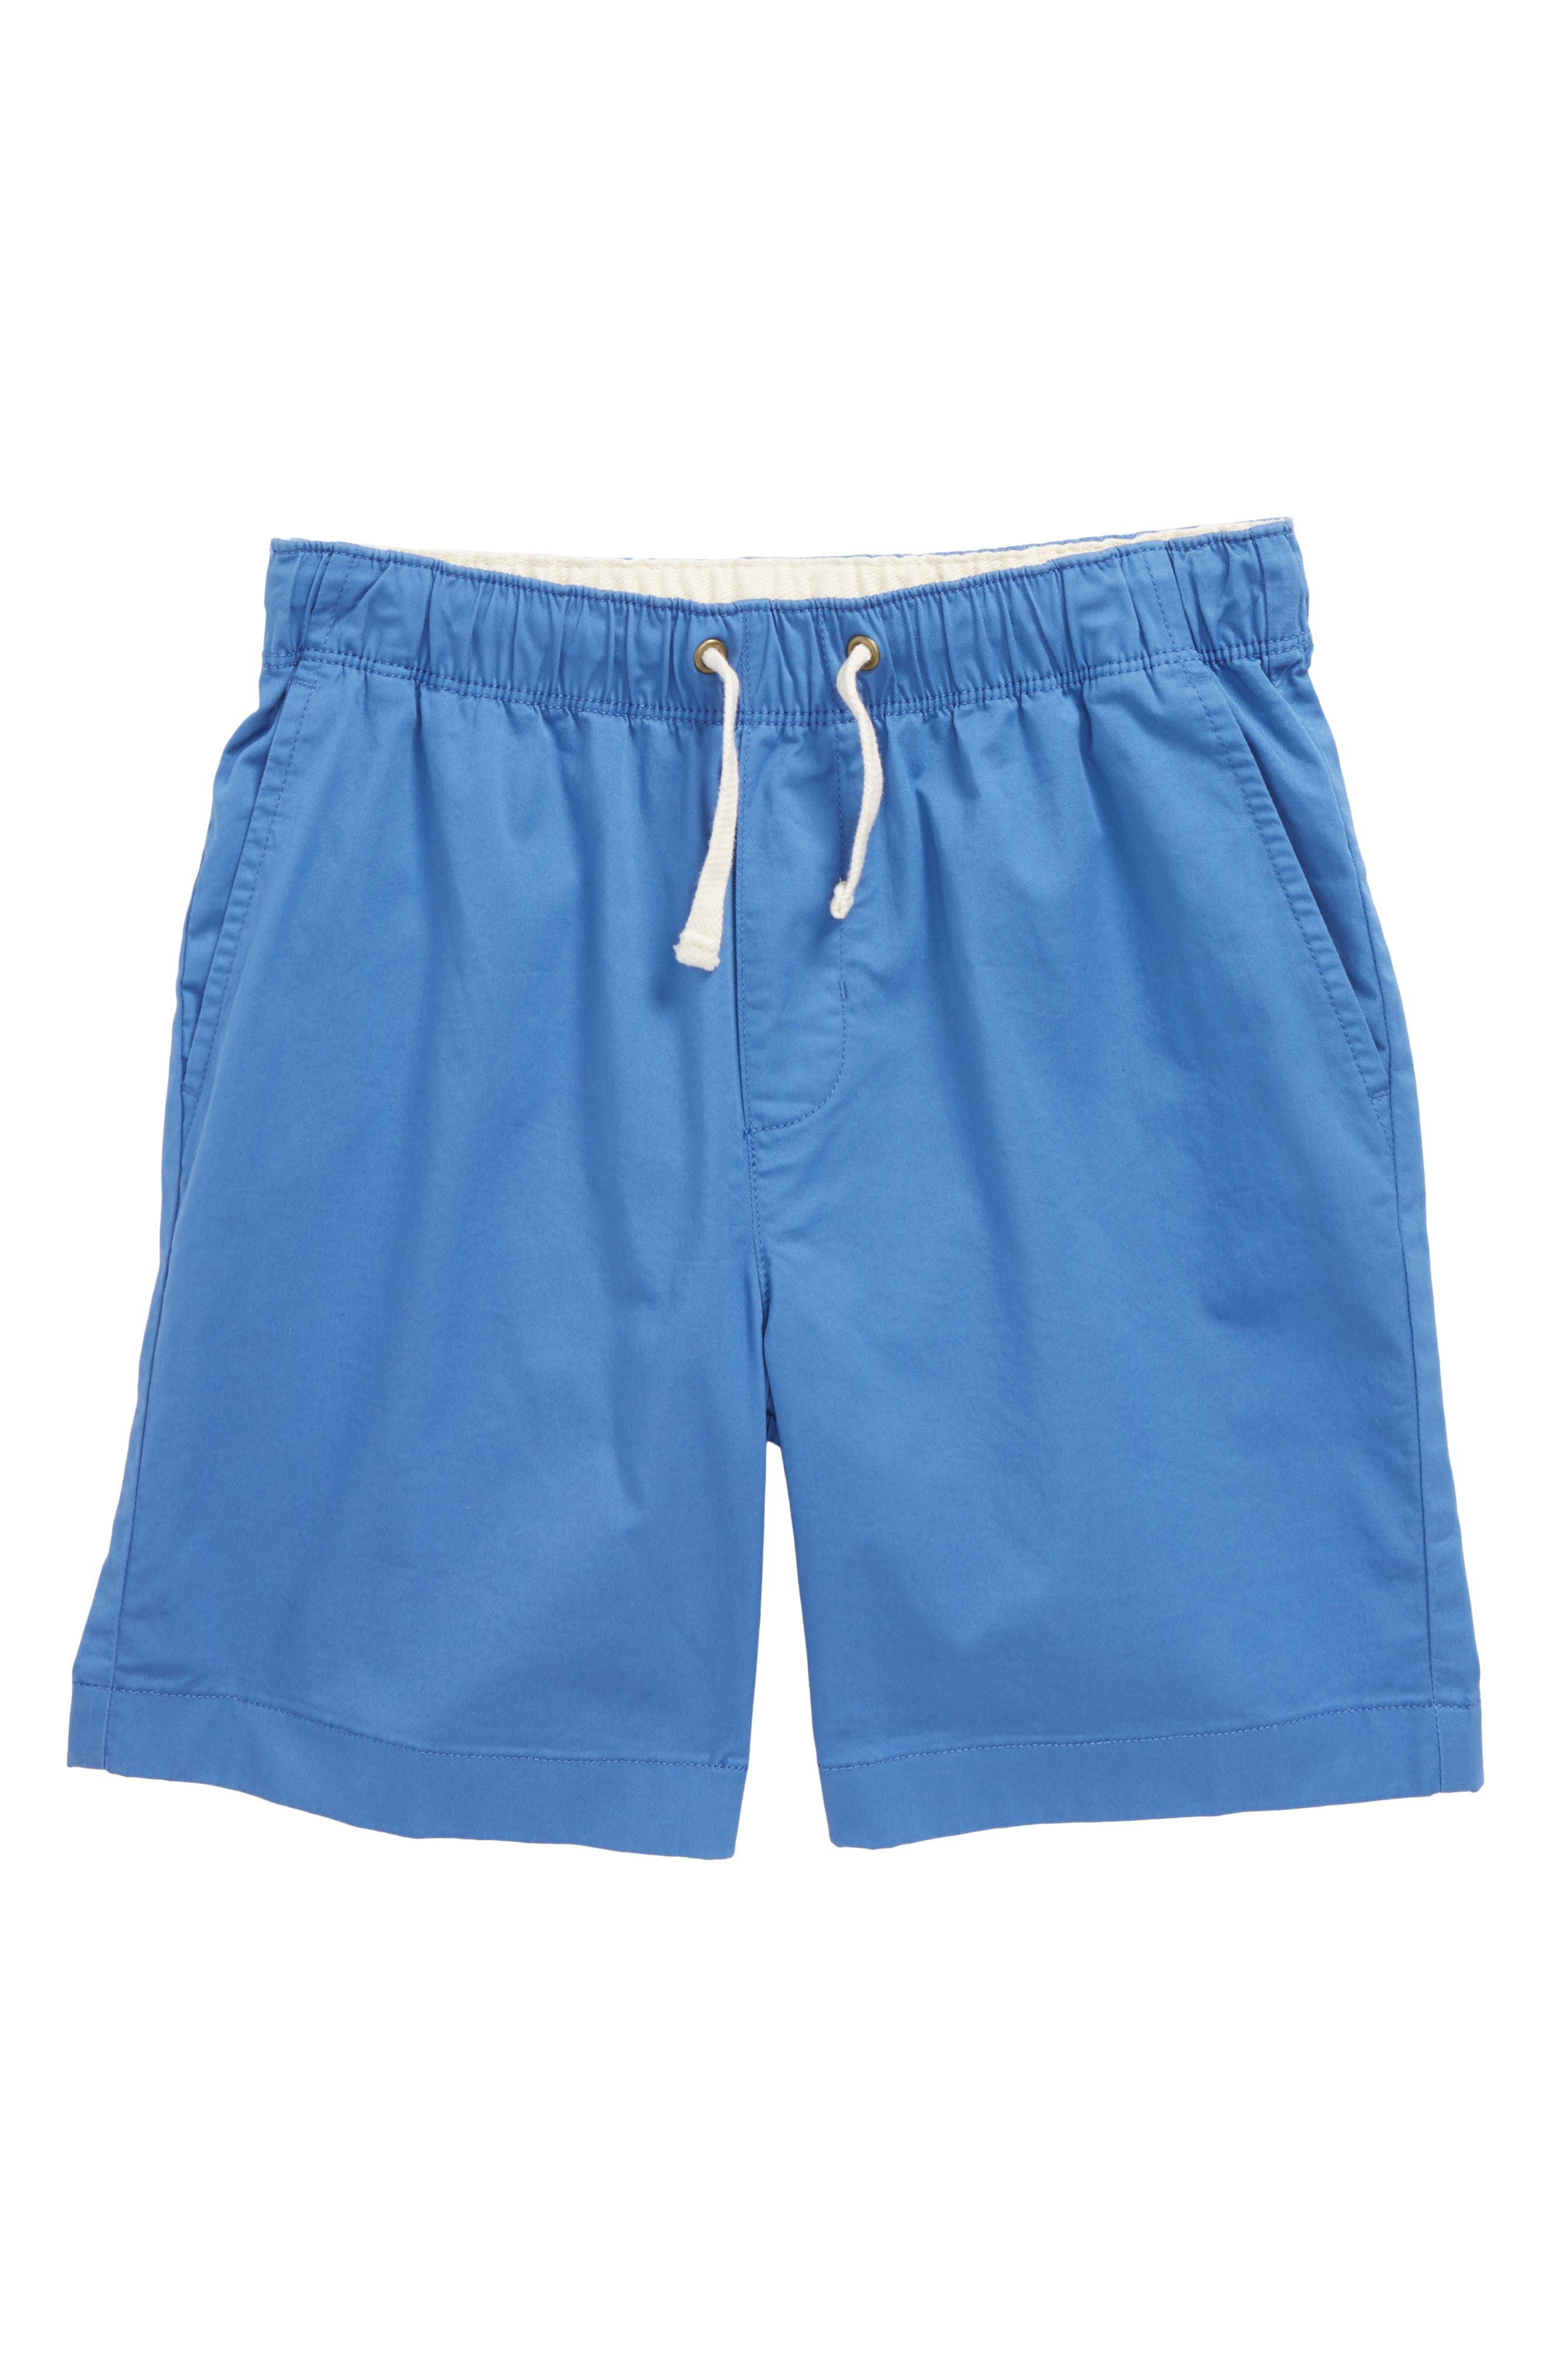 crewcuts by J.Crew Tie Front Dock Shorts (Toddler Boys, Little Boys & Big Boys)